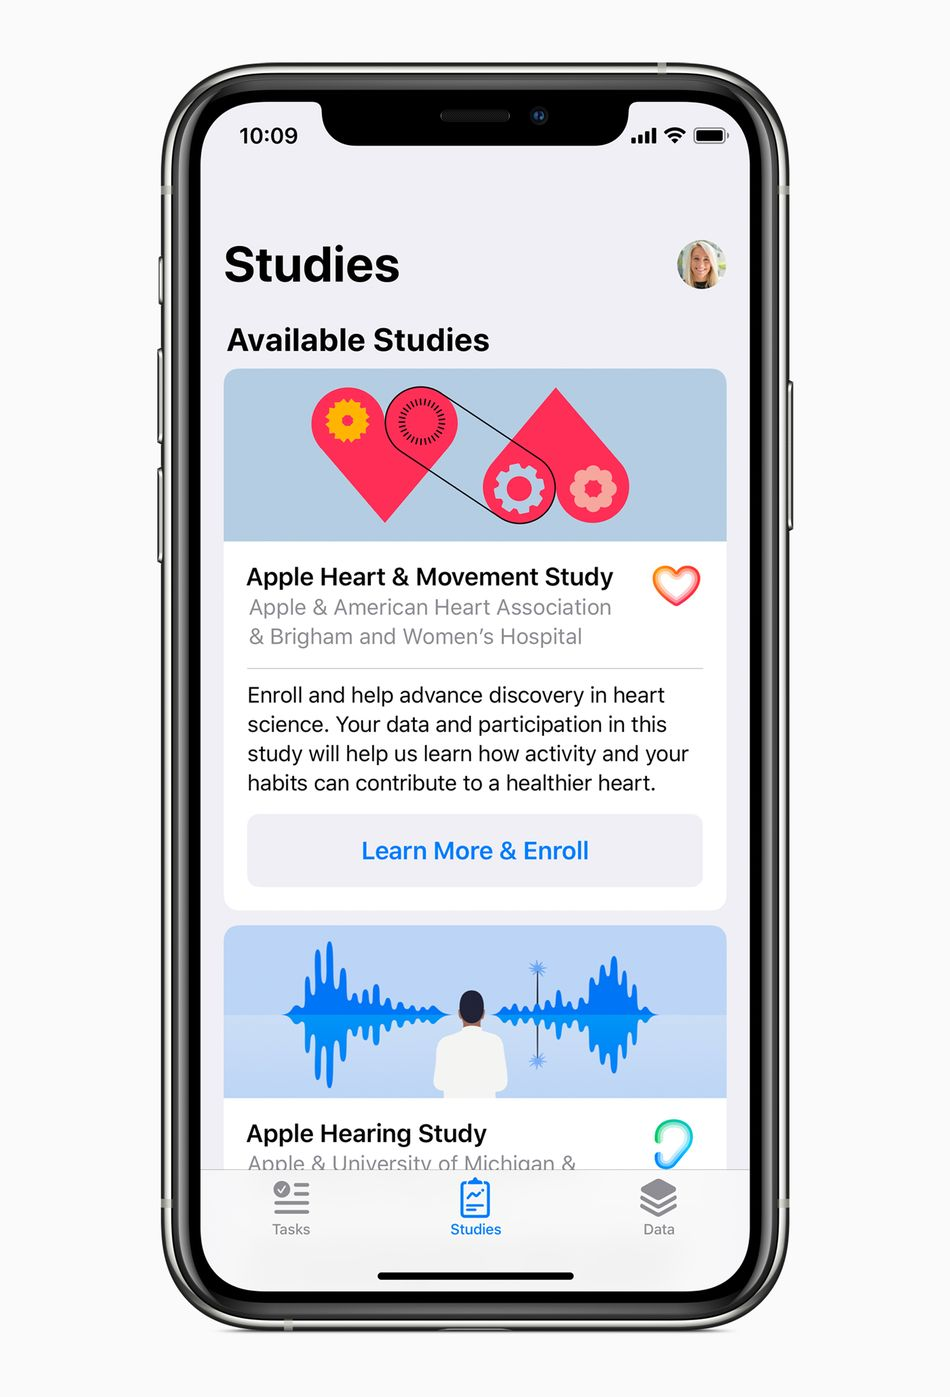 """You can download """"Research"""" in the app store to participate in Apple's studies."""